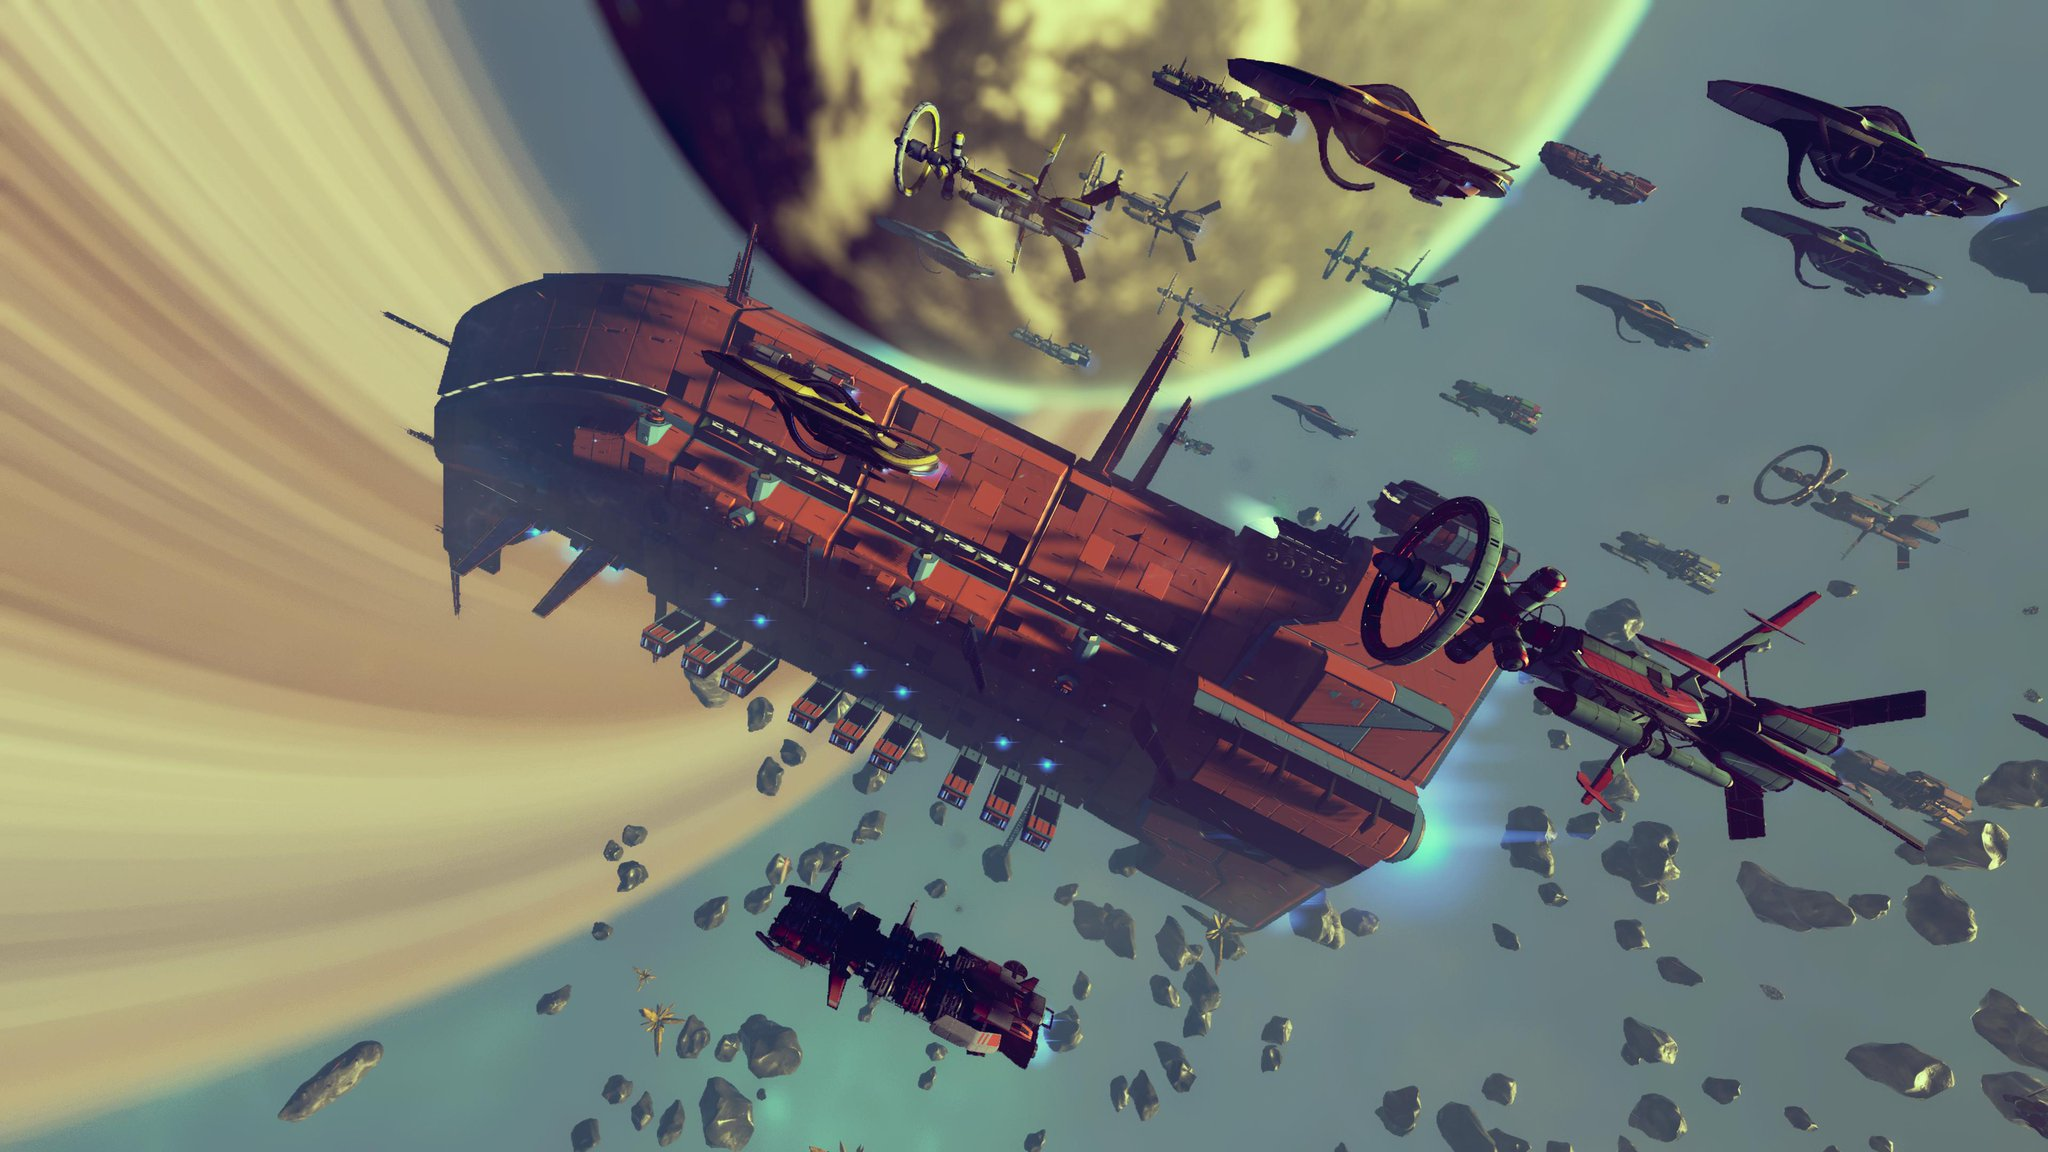 A fleet of capital ships and freighters in orbit around a ringed alien world